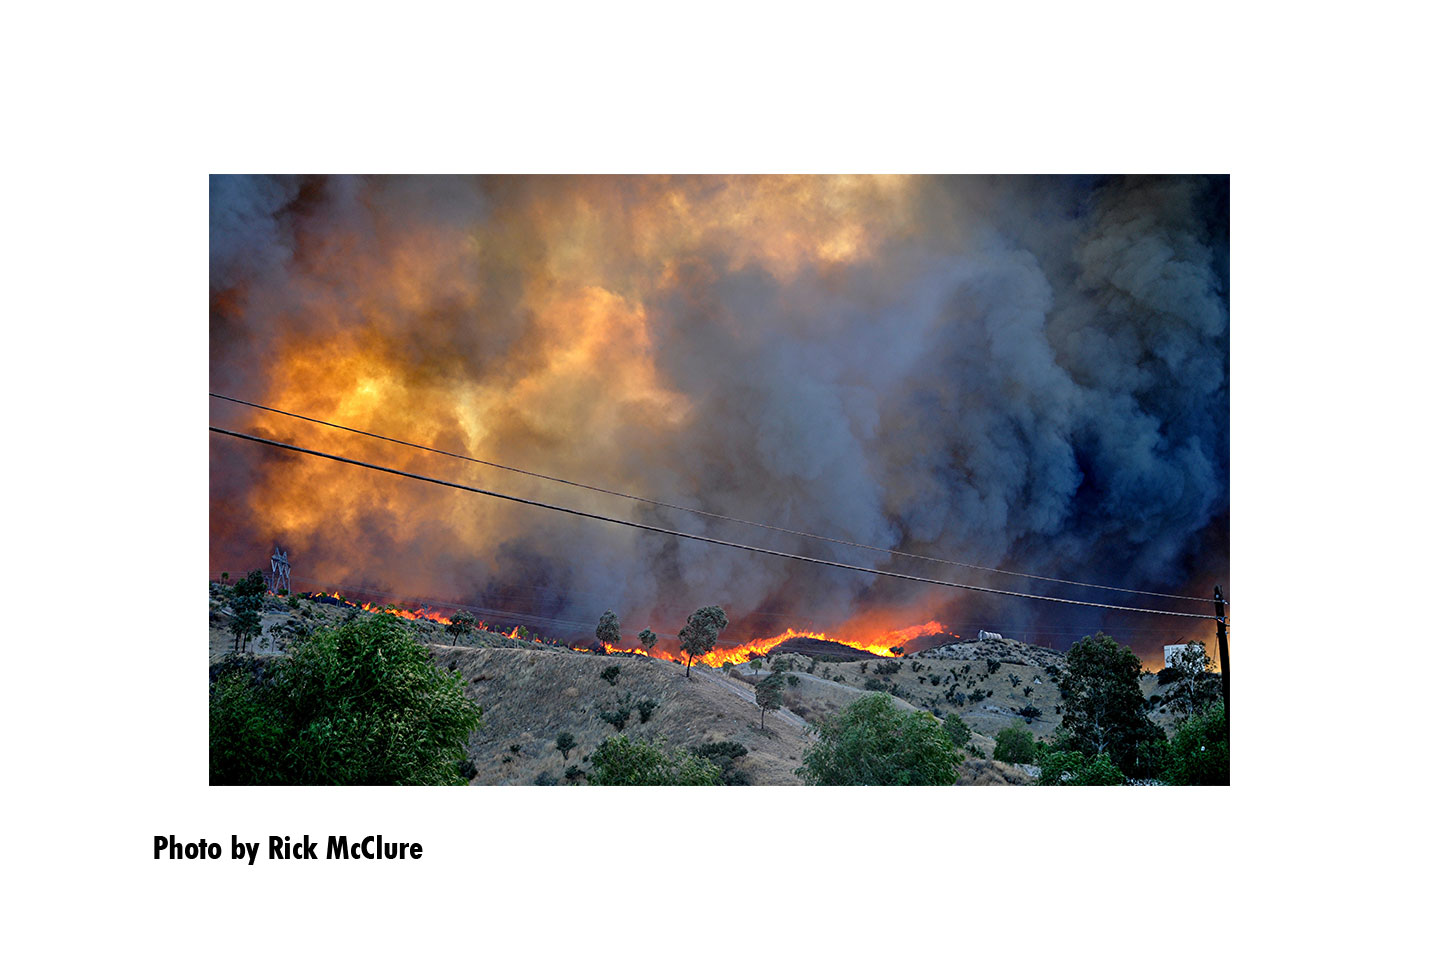 A line of flames along the side of a hilll